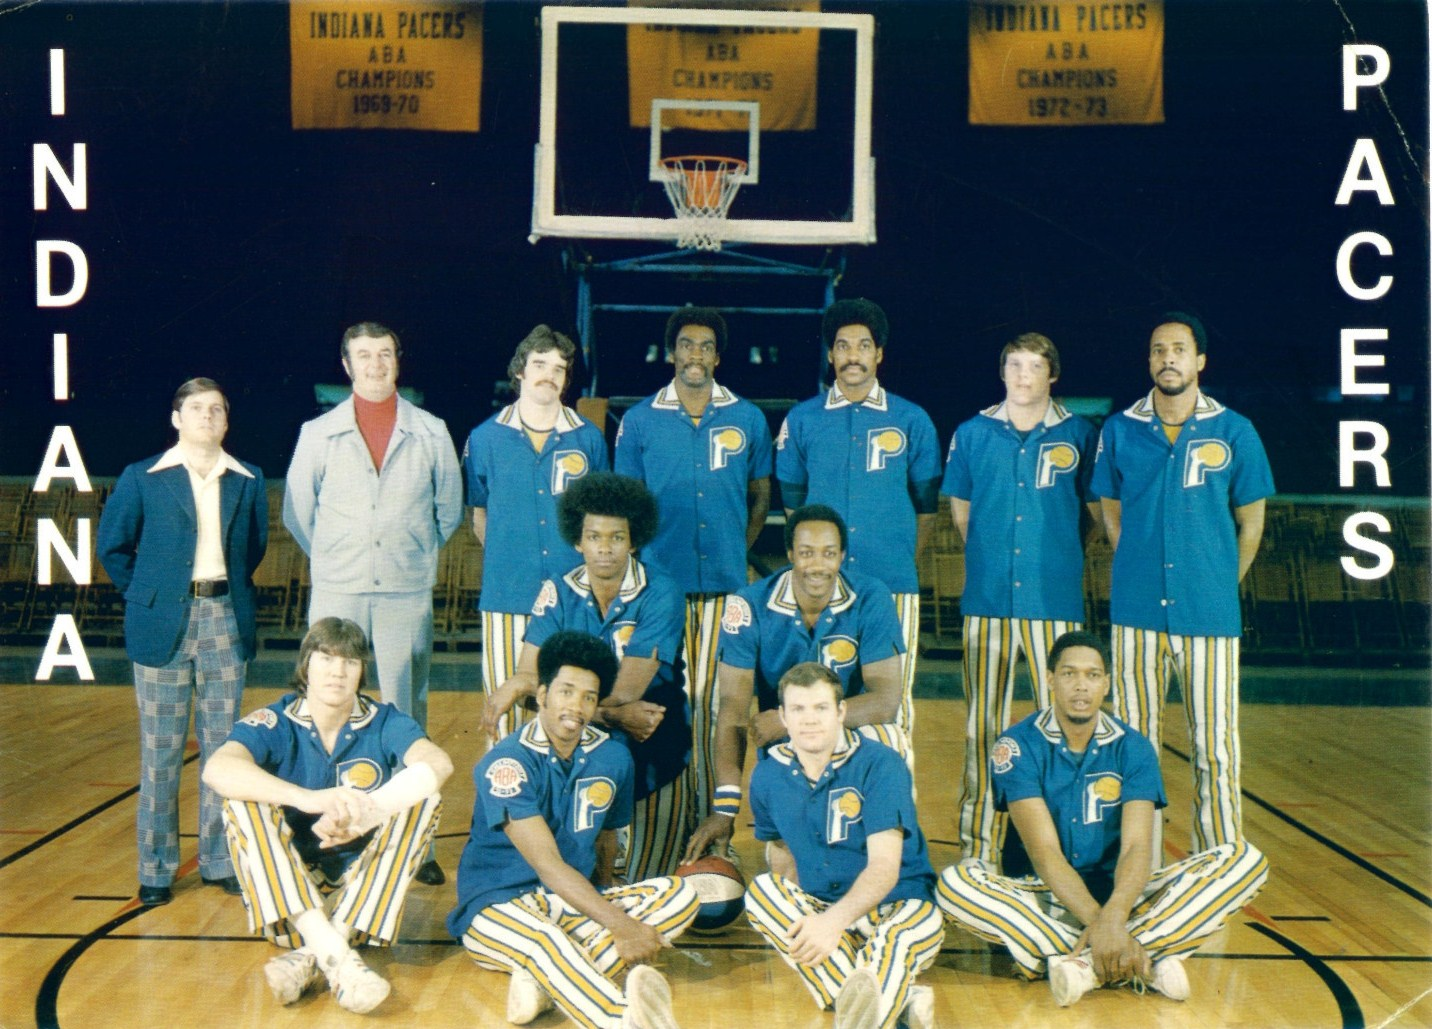 Pacers 73-74 Warmup Team.jpg